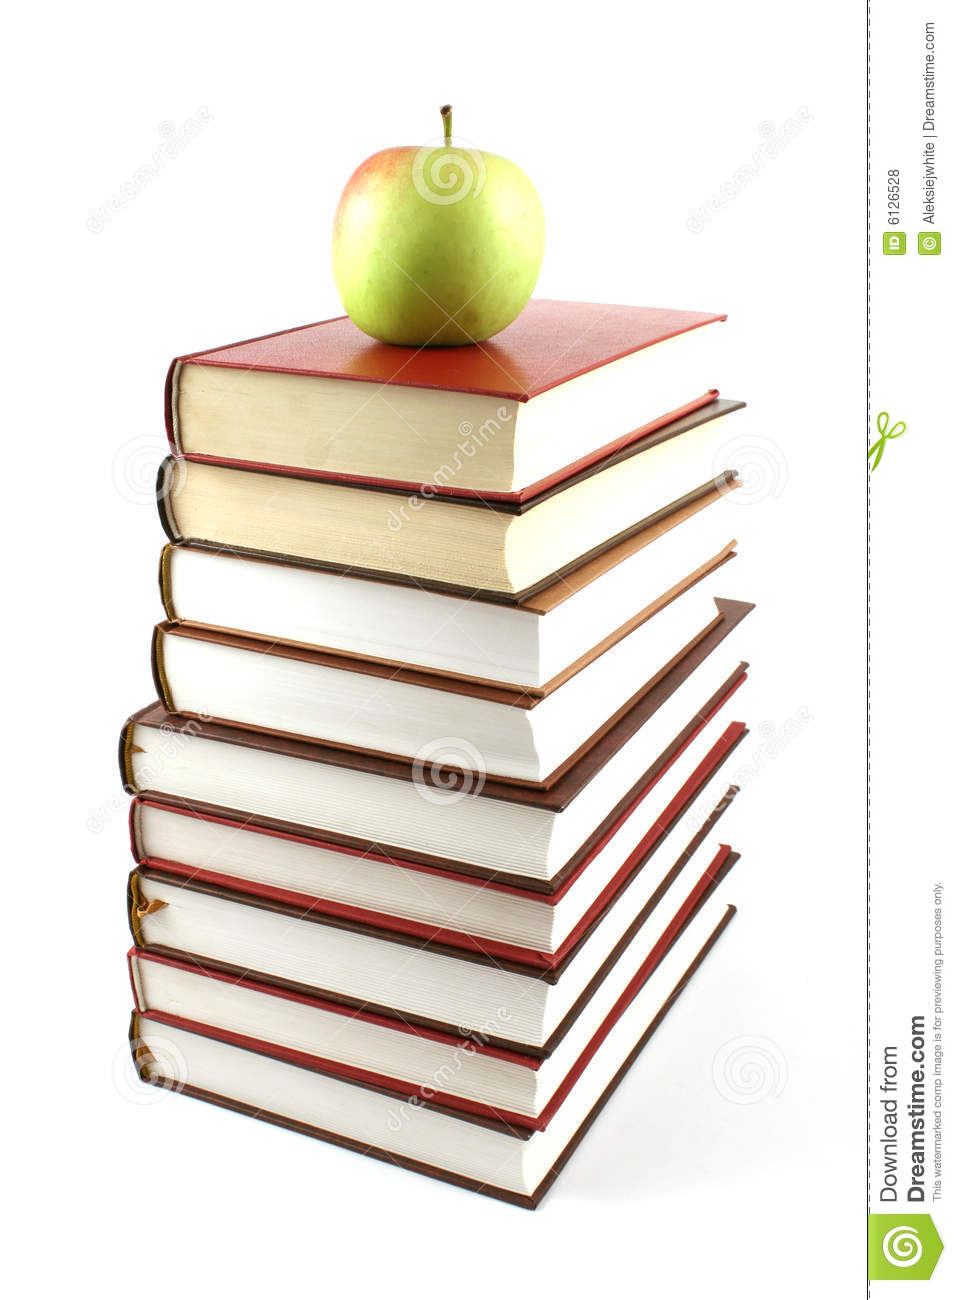 High books pyramid with green apple on top